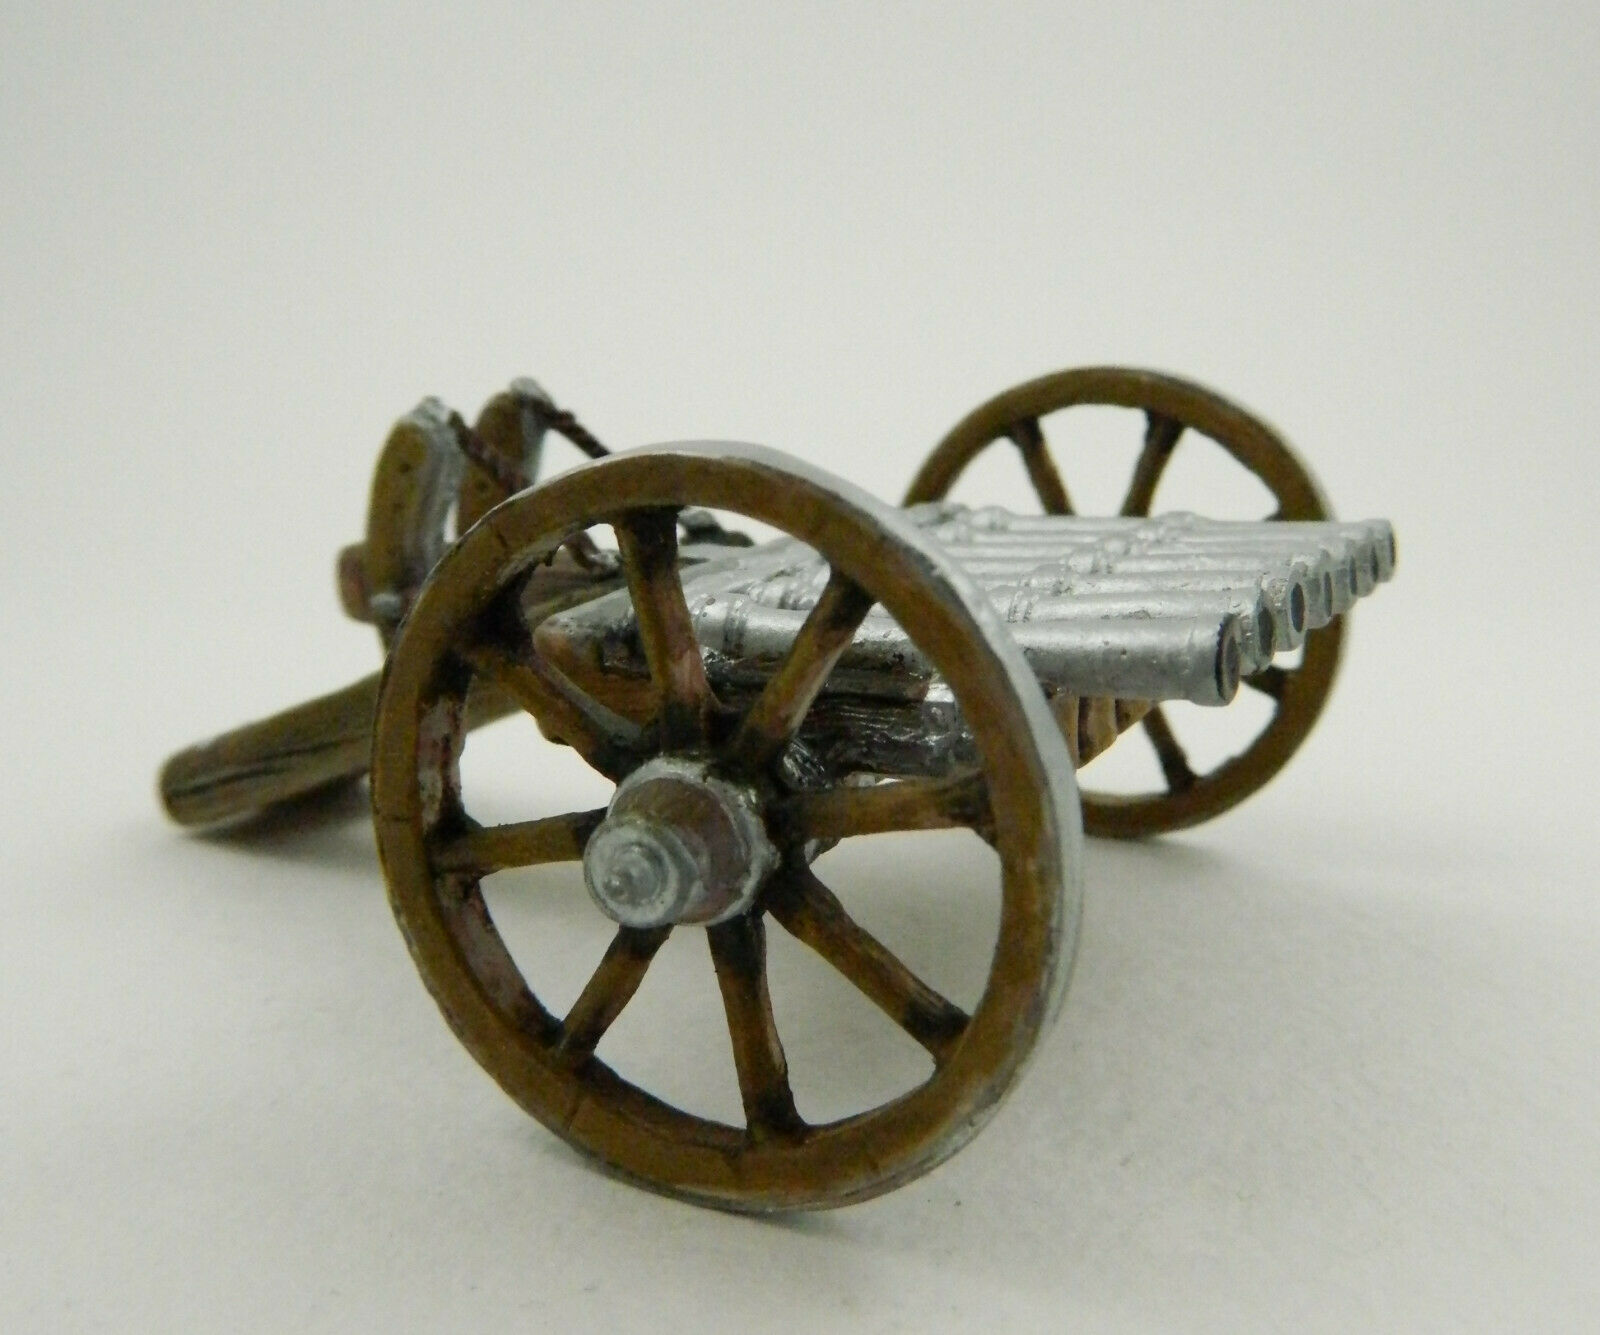 Middle Ages — Ribauldequin, 15th century — 54 mm Lead Cannon